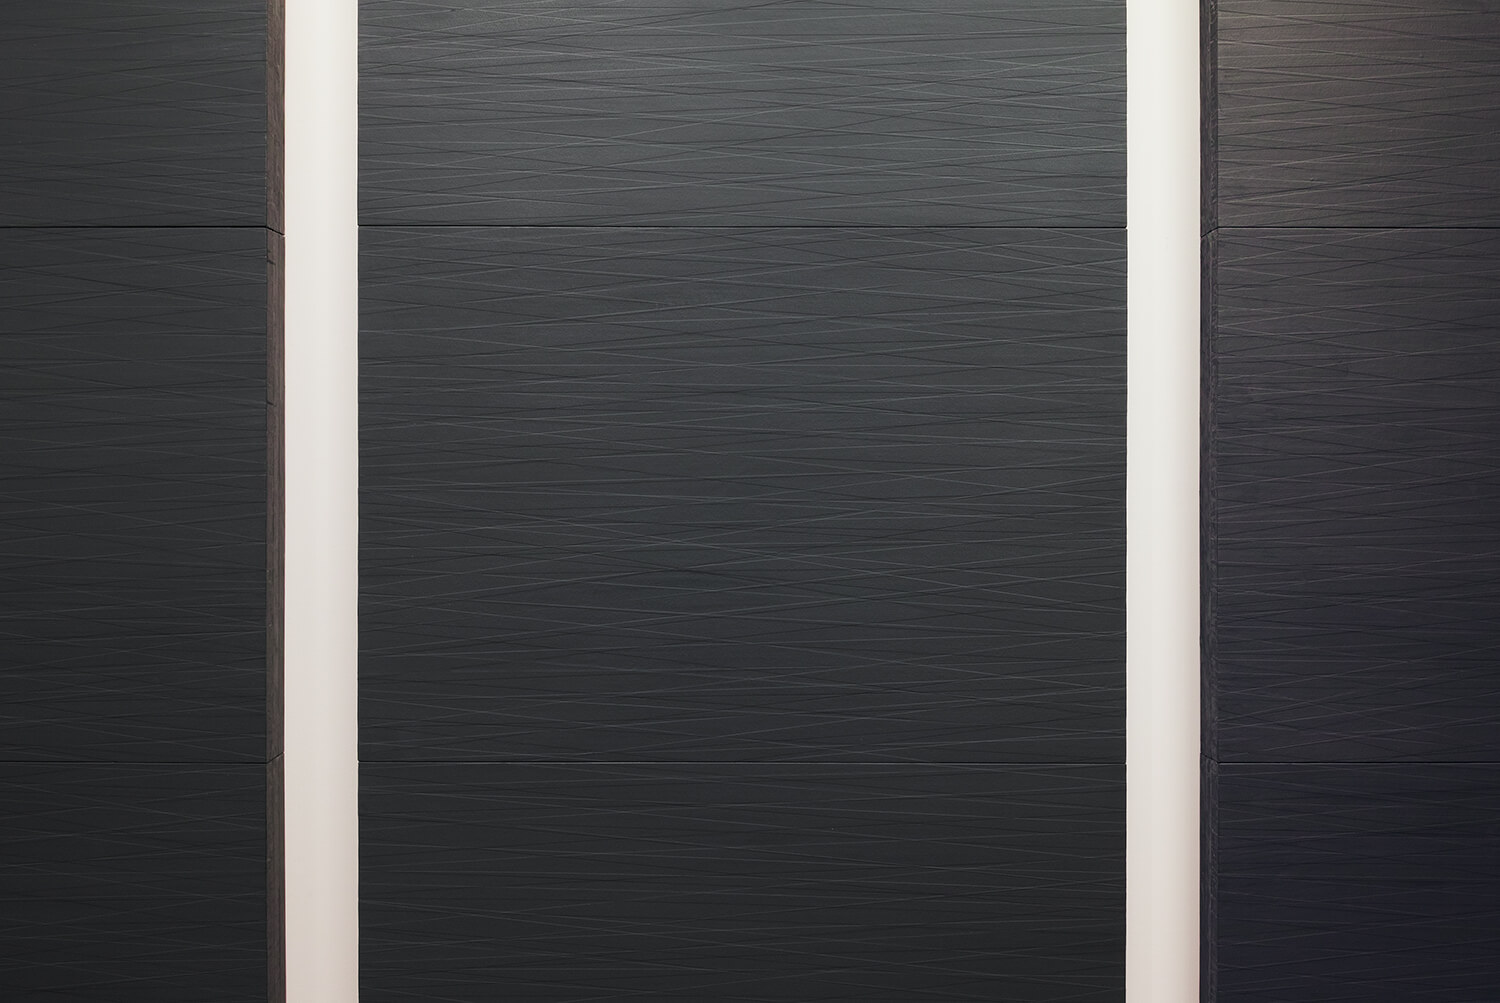 <b>桑山 忠明 Tadaaki Kuwayama</b><br>untitled (metallic dark blue, metallic dark gray)<br>oil, beewax, paper tape on honeycomb board<br>243.2 x 116.8 x 11.9 cm, each (set of 6)  1990